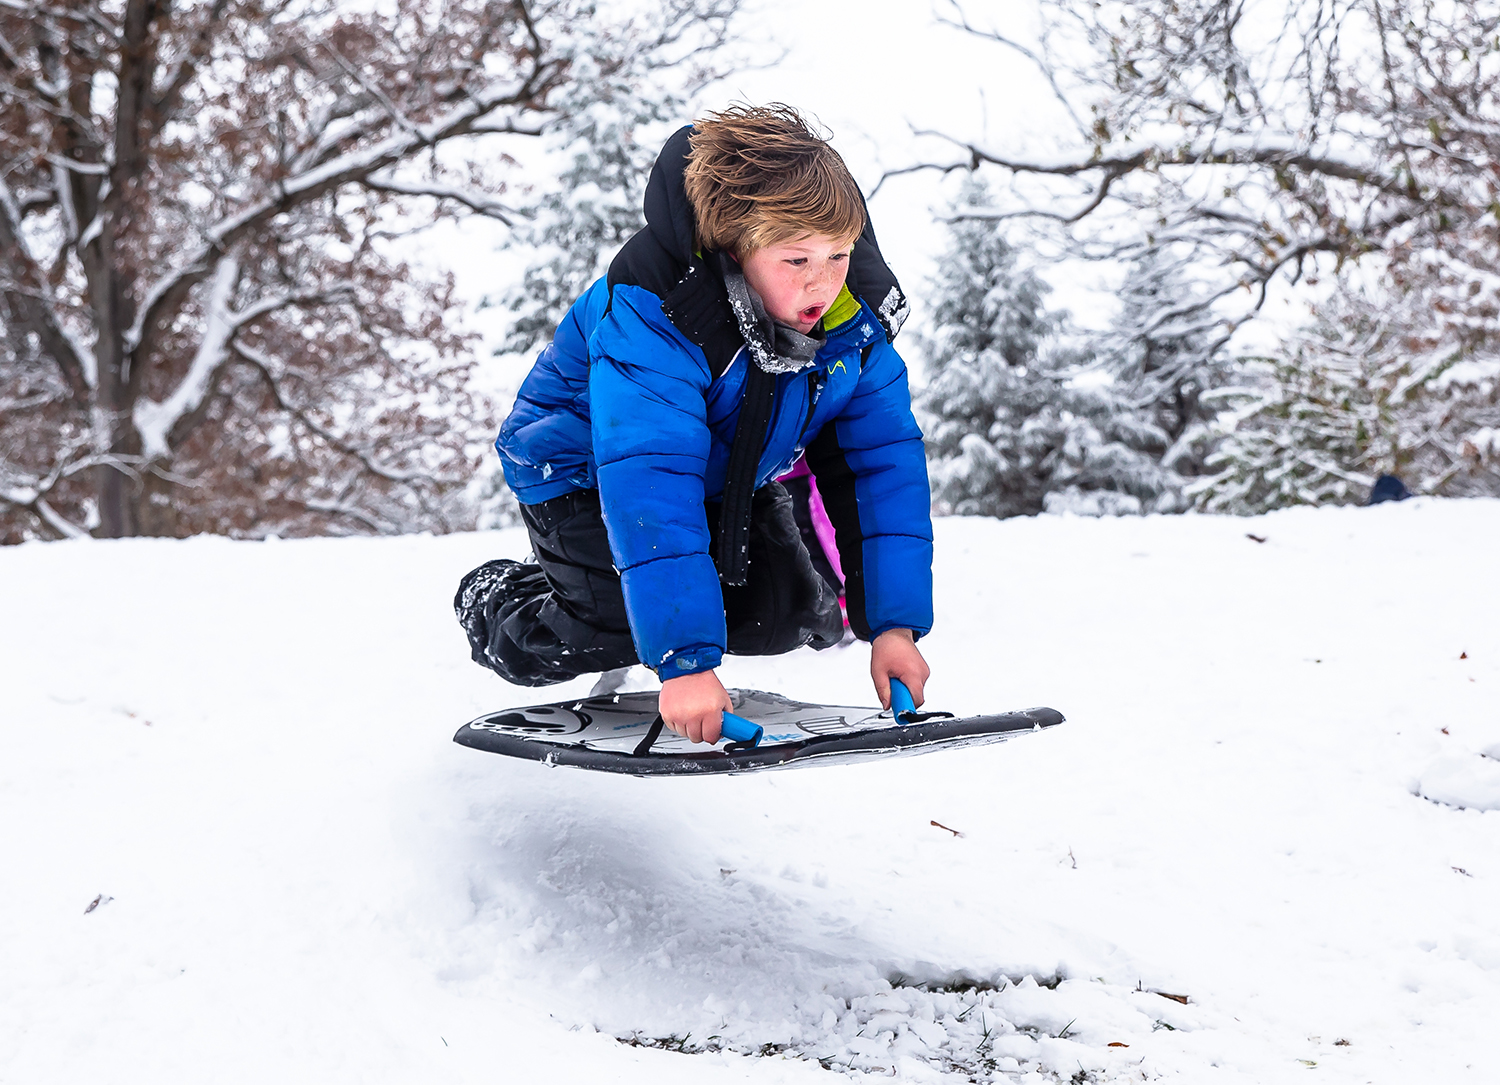 "Felix Forney, 8, launches off a jump while sledding in Washington Park after a November snow storm dumped over five inches of snow across the area, Thursday, Nov. 15, 2018, in Springfield, Ill. ""You feel like you're just going to break something,"" said Forney who had made the jump too many times to count.  [Justin L. Fowler/The State Journal-Register]"